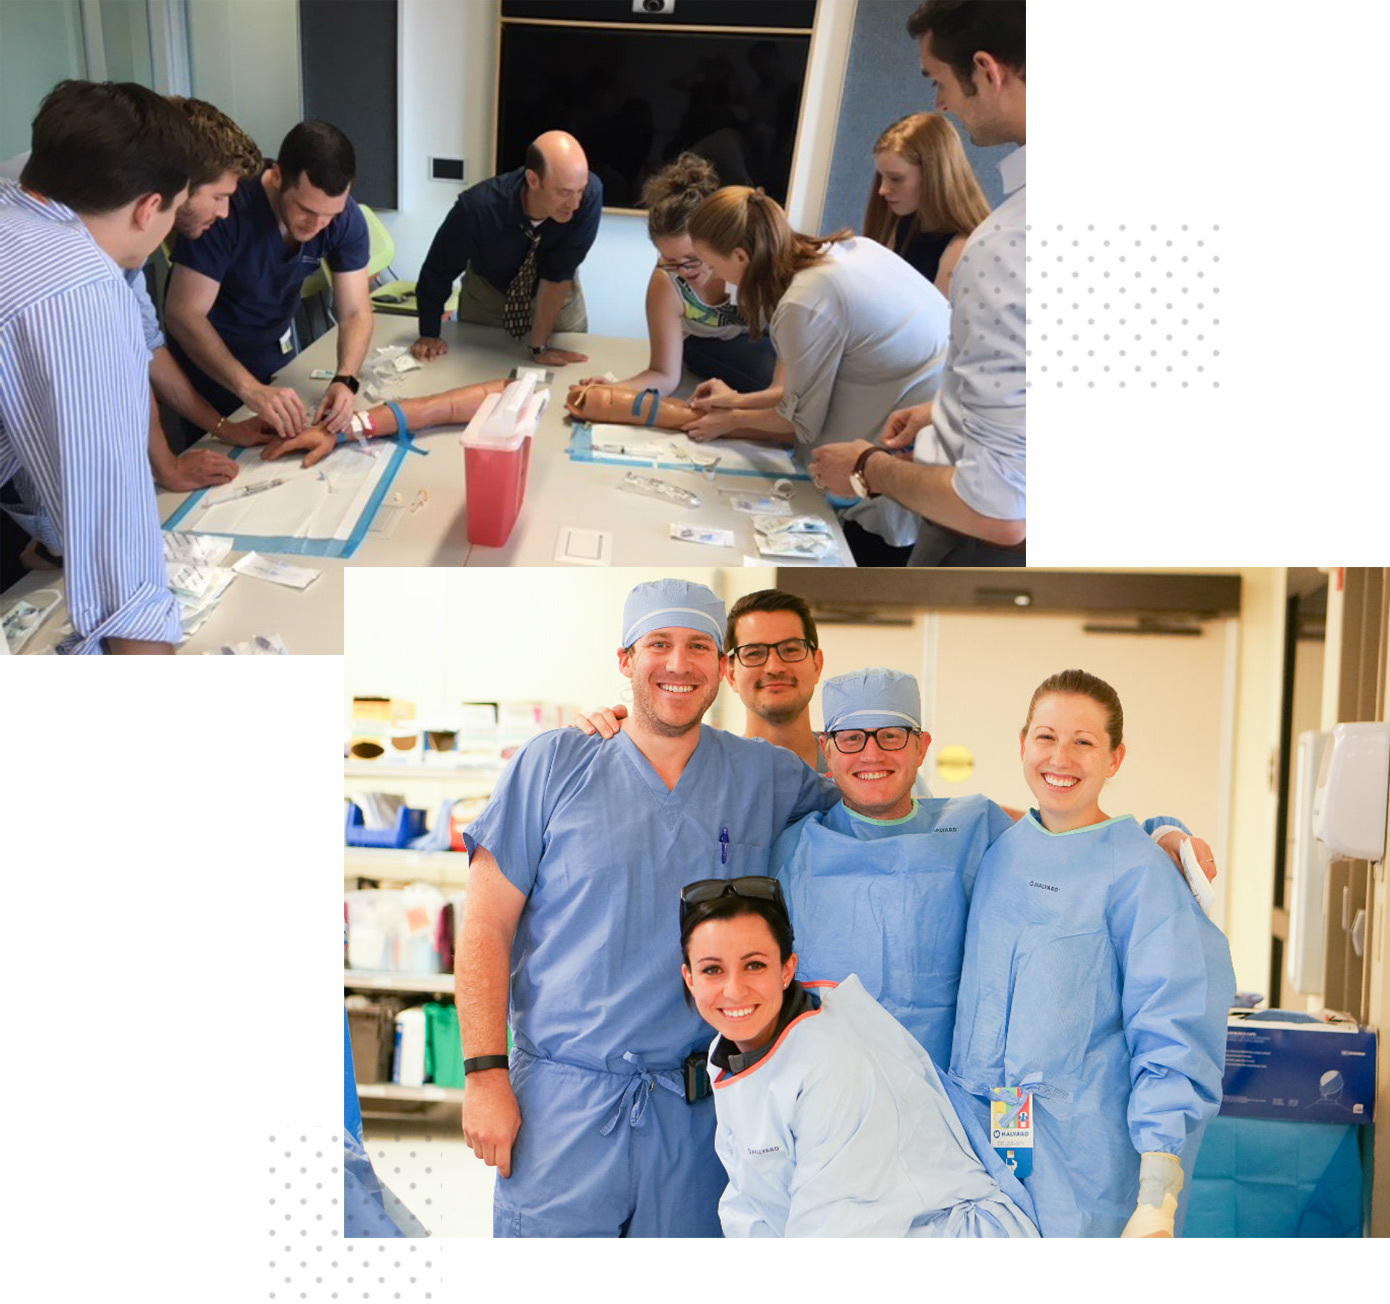 Students participating in Department of Surgery and Perioperative Care educational activities.